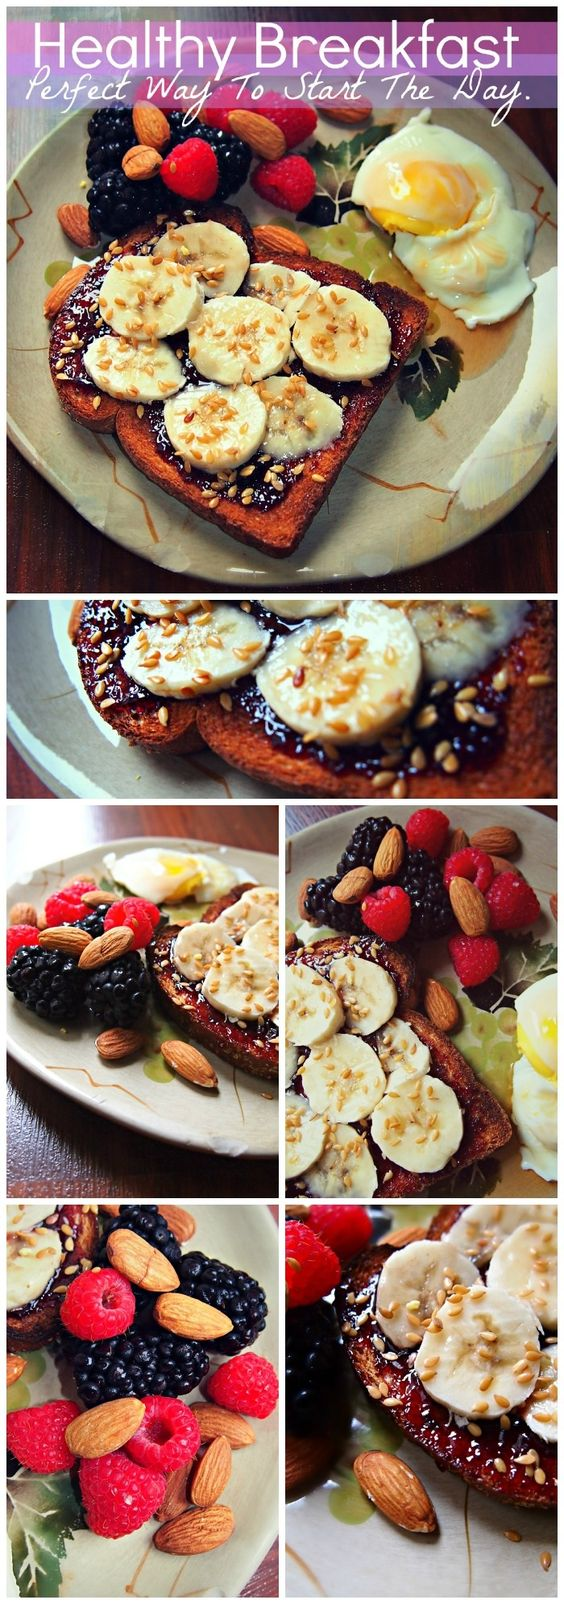 Healthy Breakfast- The Perfect Way To Start The Day